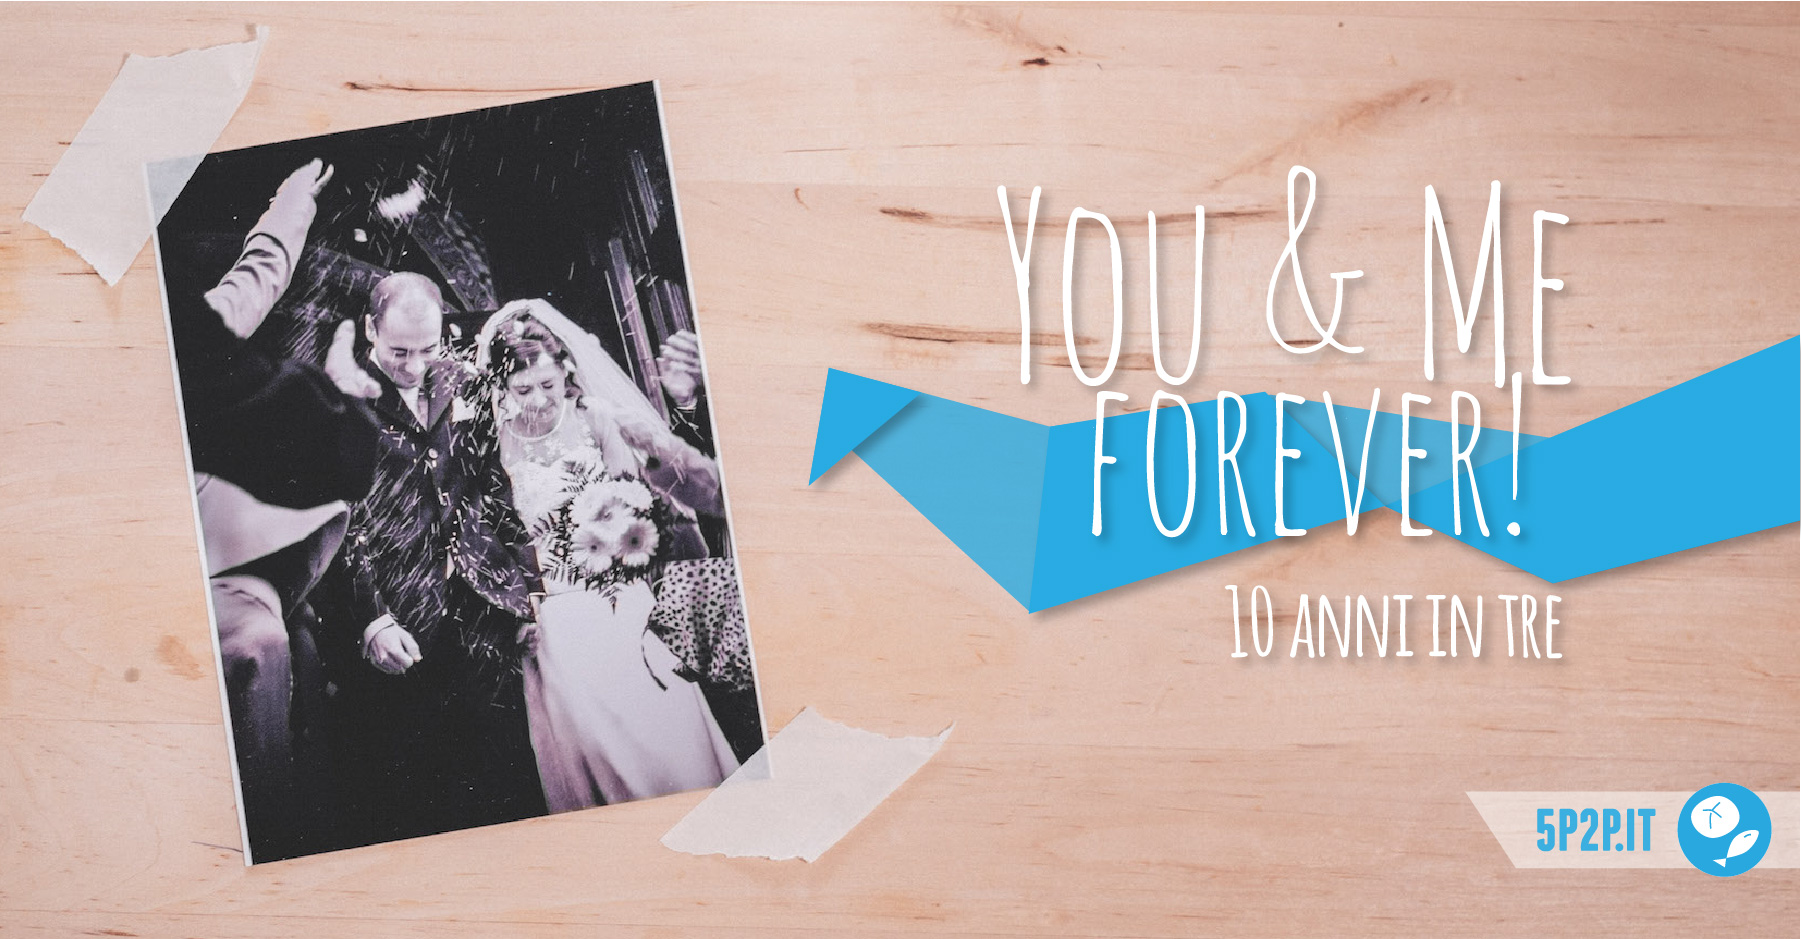 You and me forever! 10 anni in tre